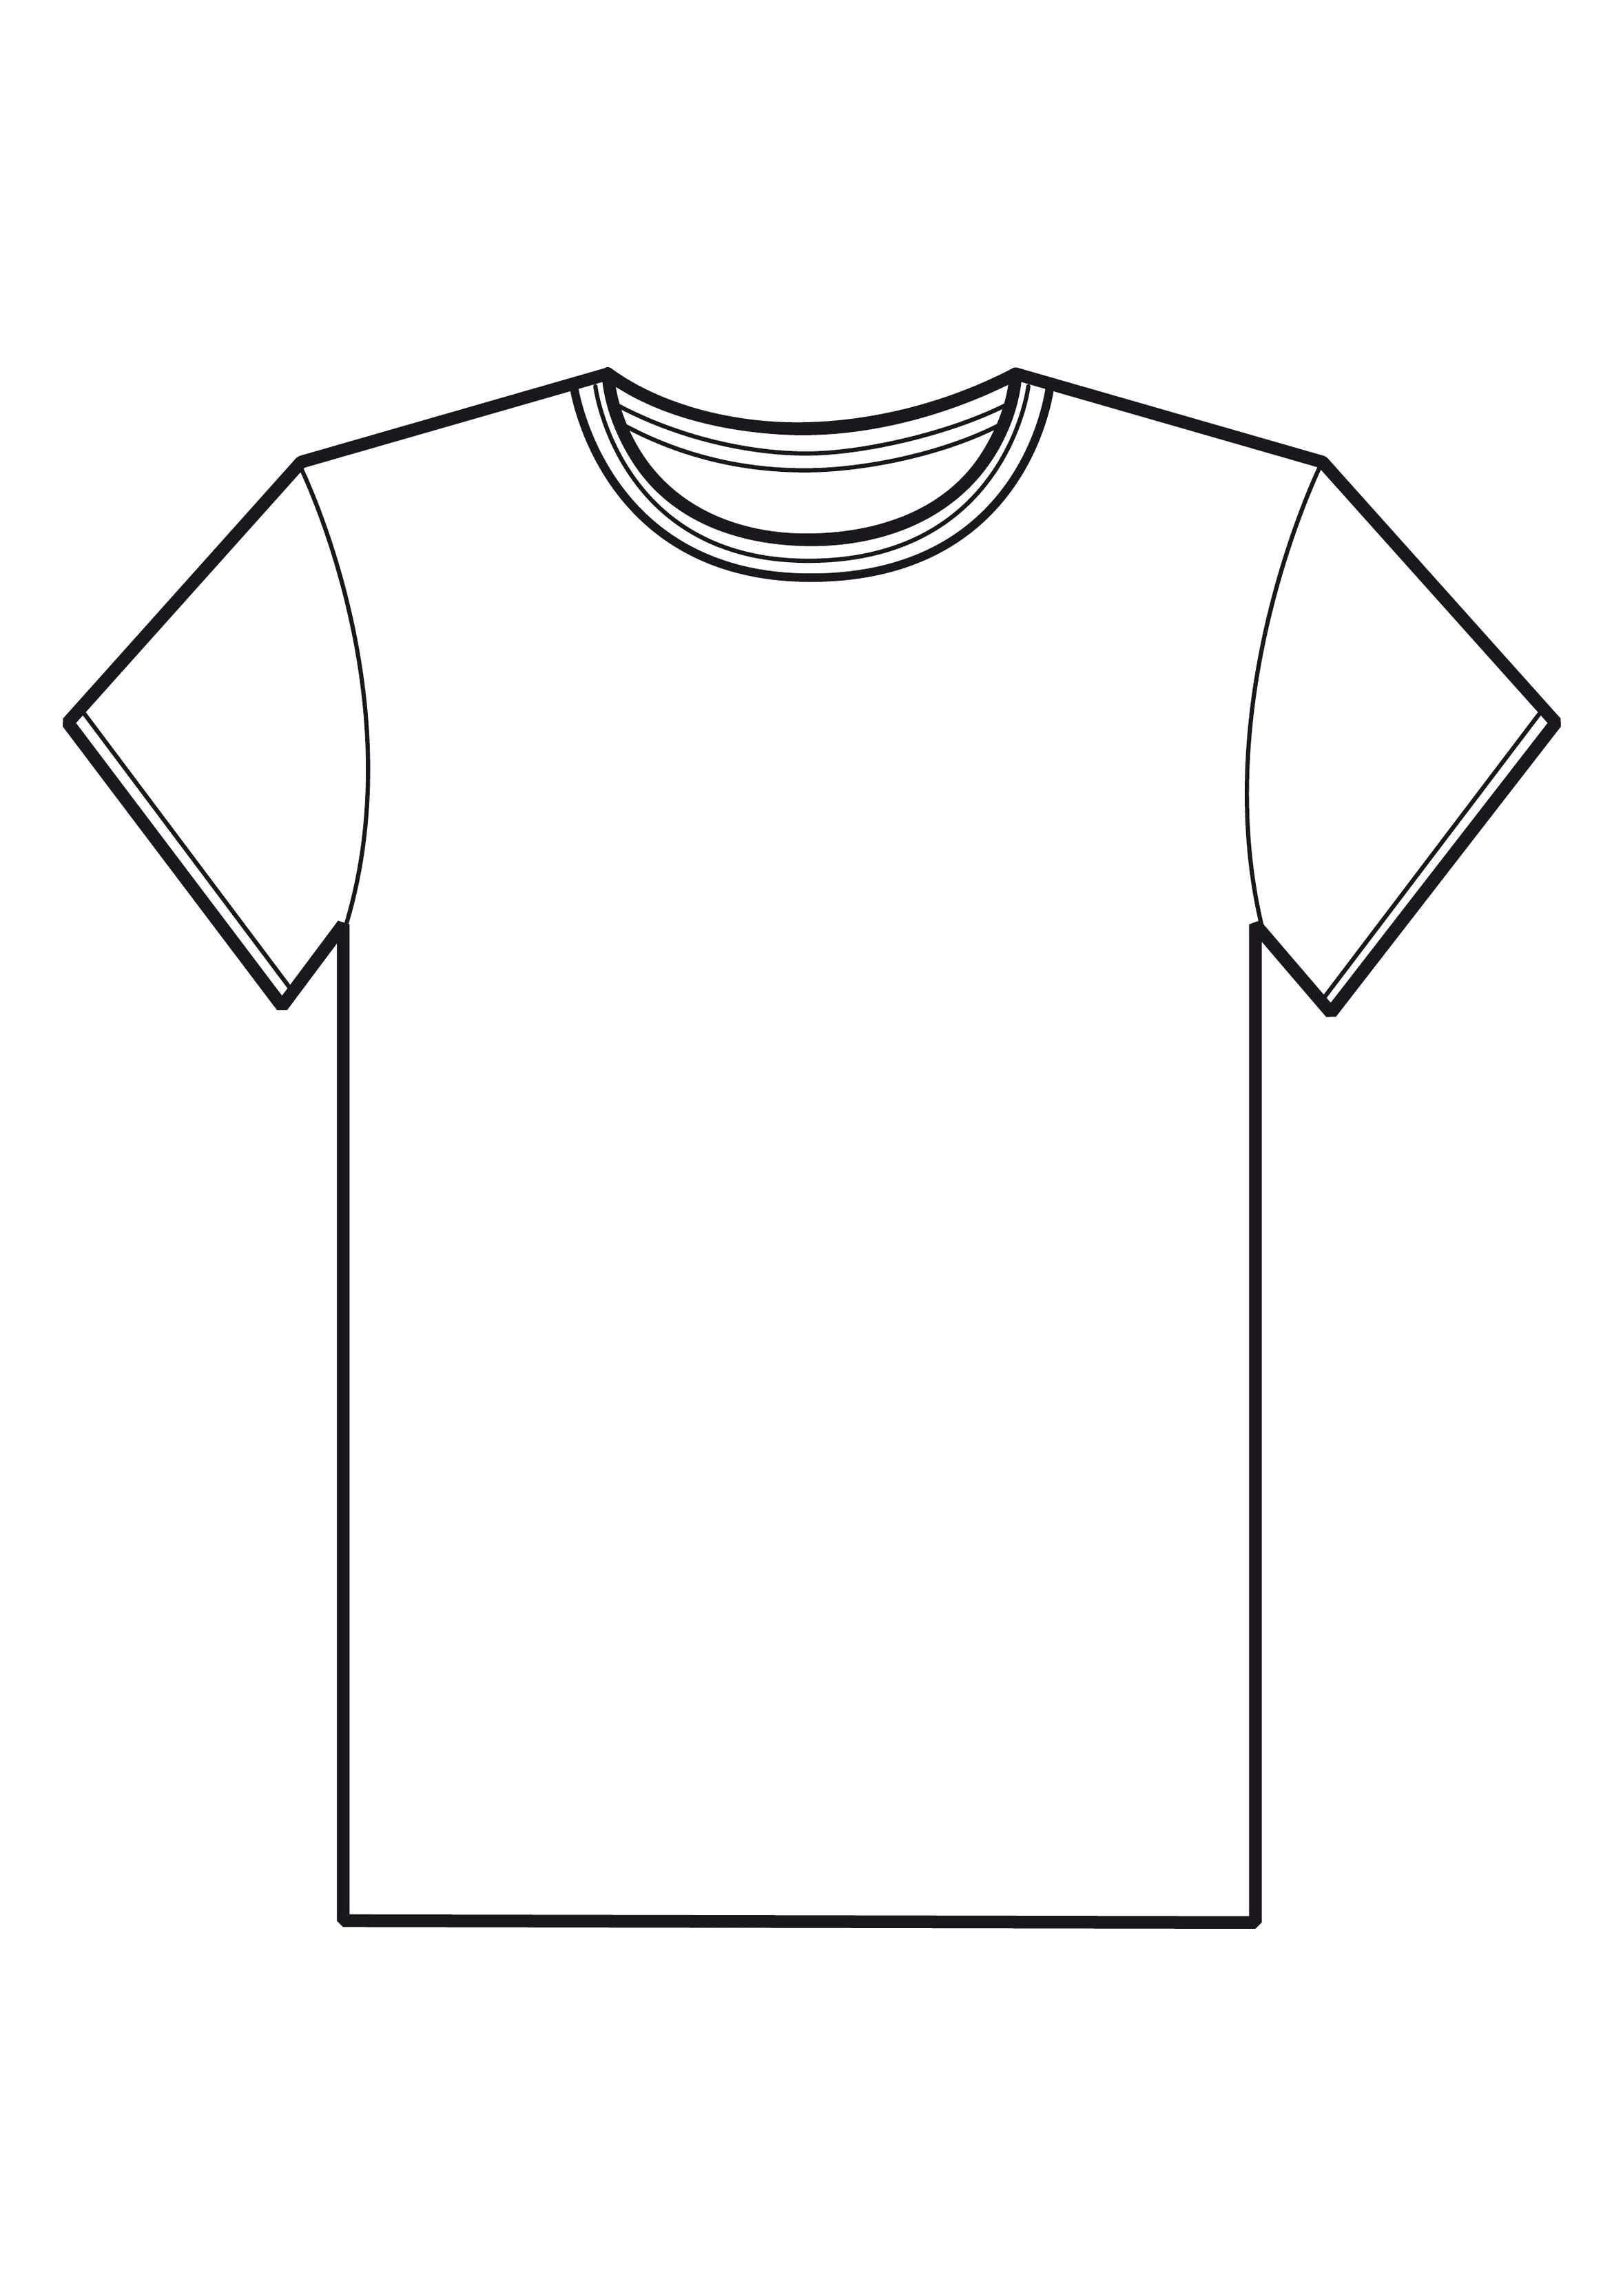 Tshirt outline clipart 3 » Clipart Station.